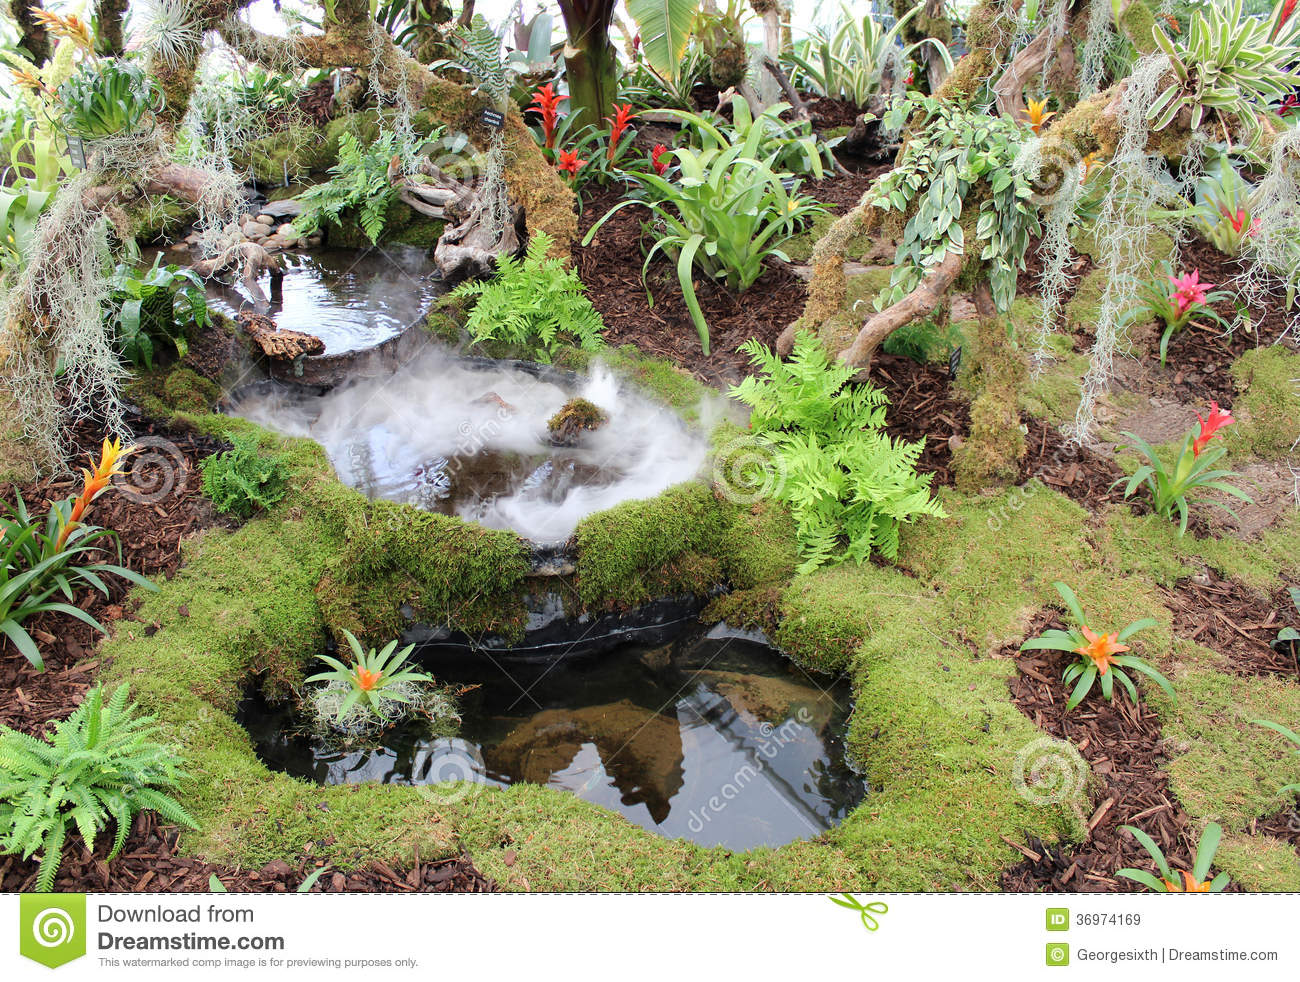 Tropical Rainforest Garden Display Southport Show Stock Image